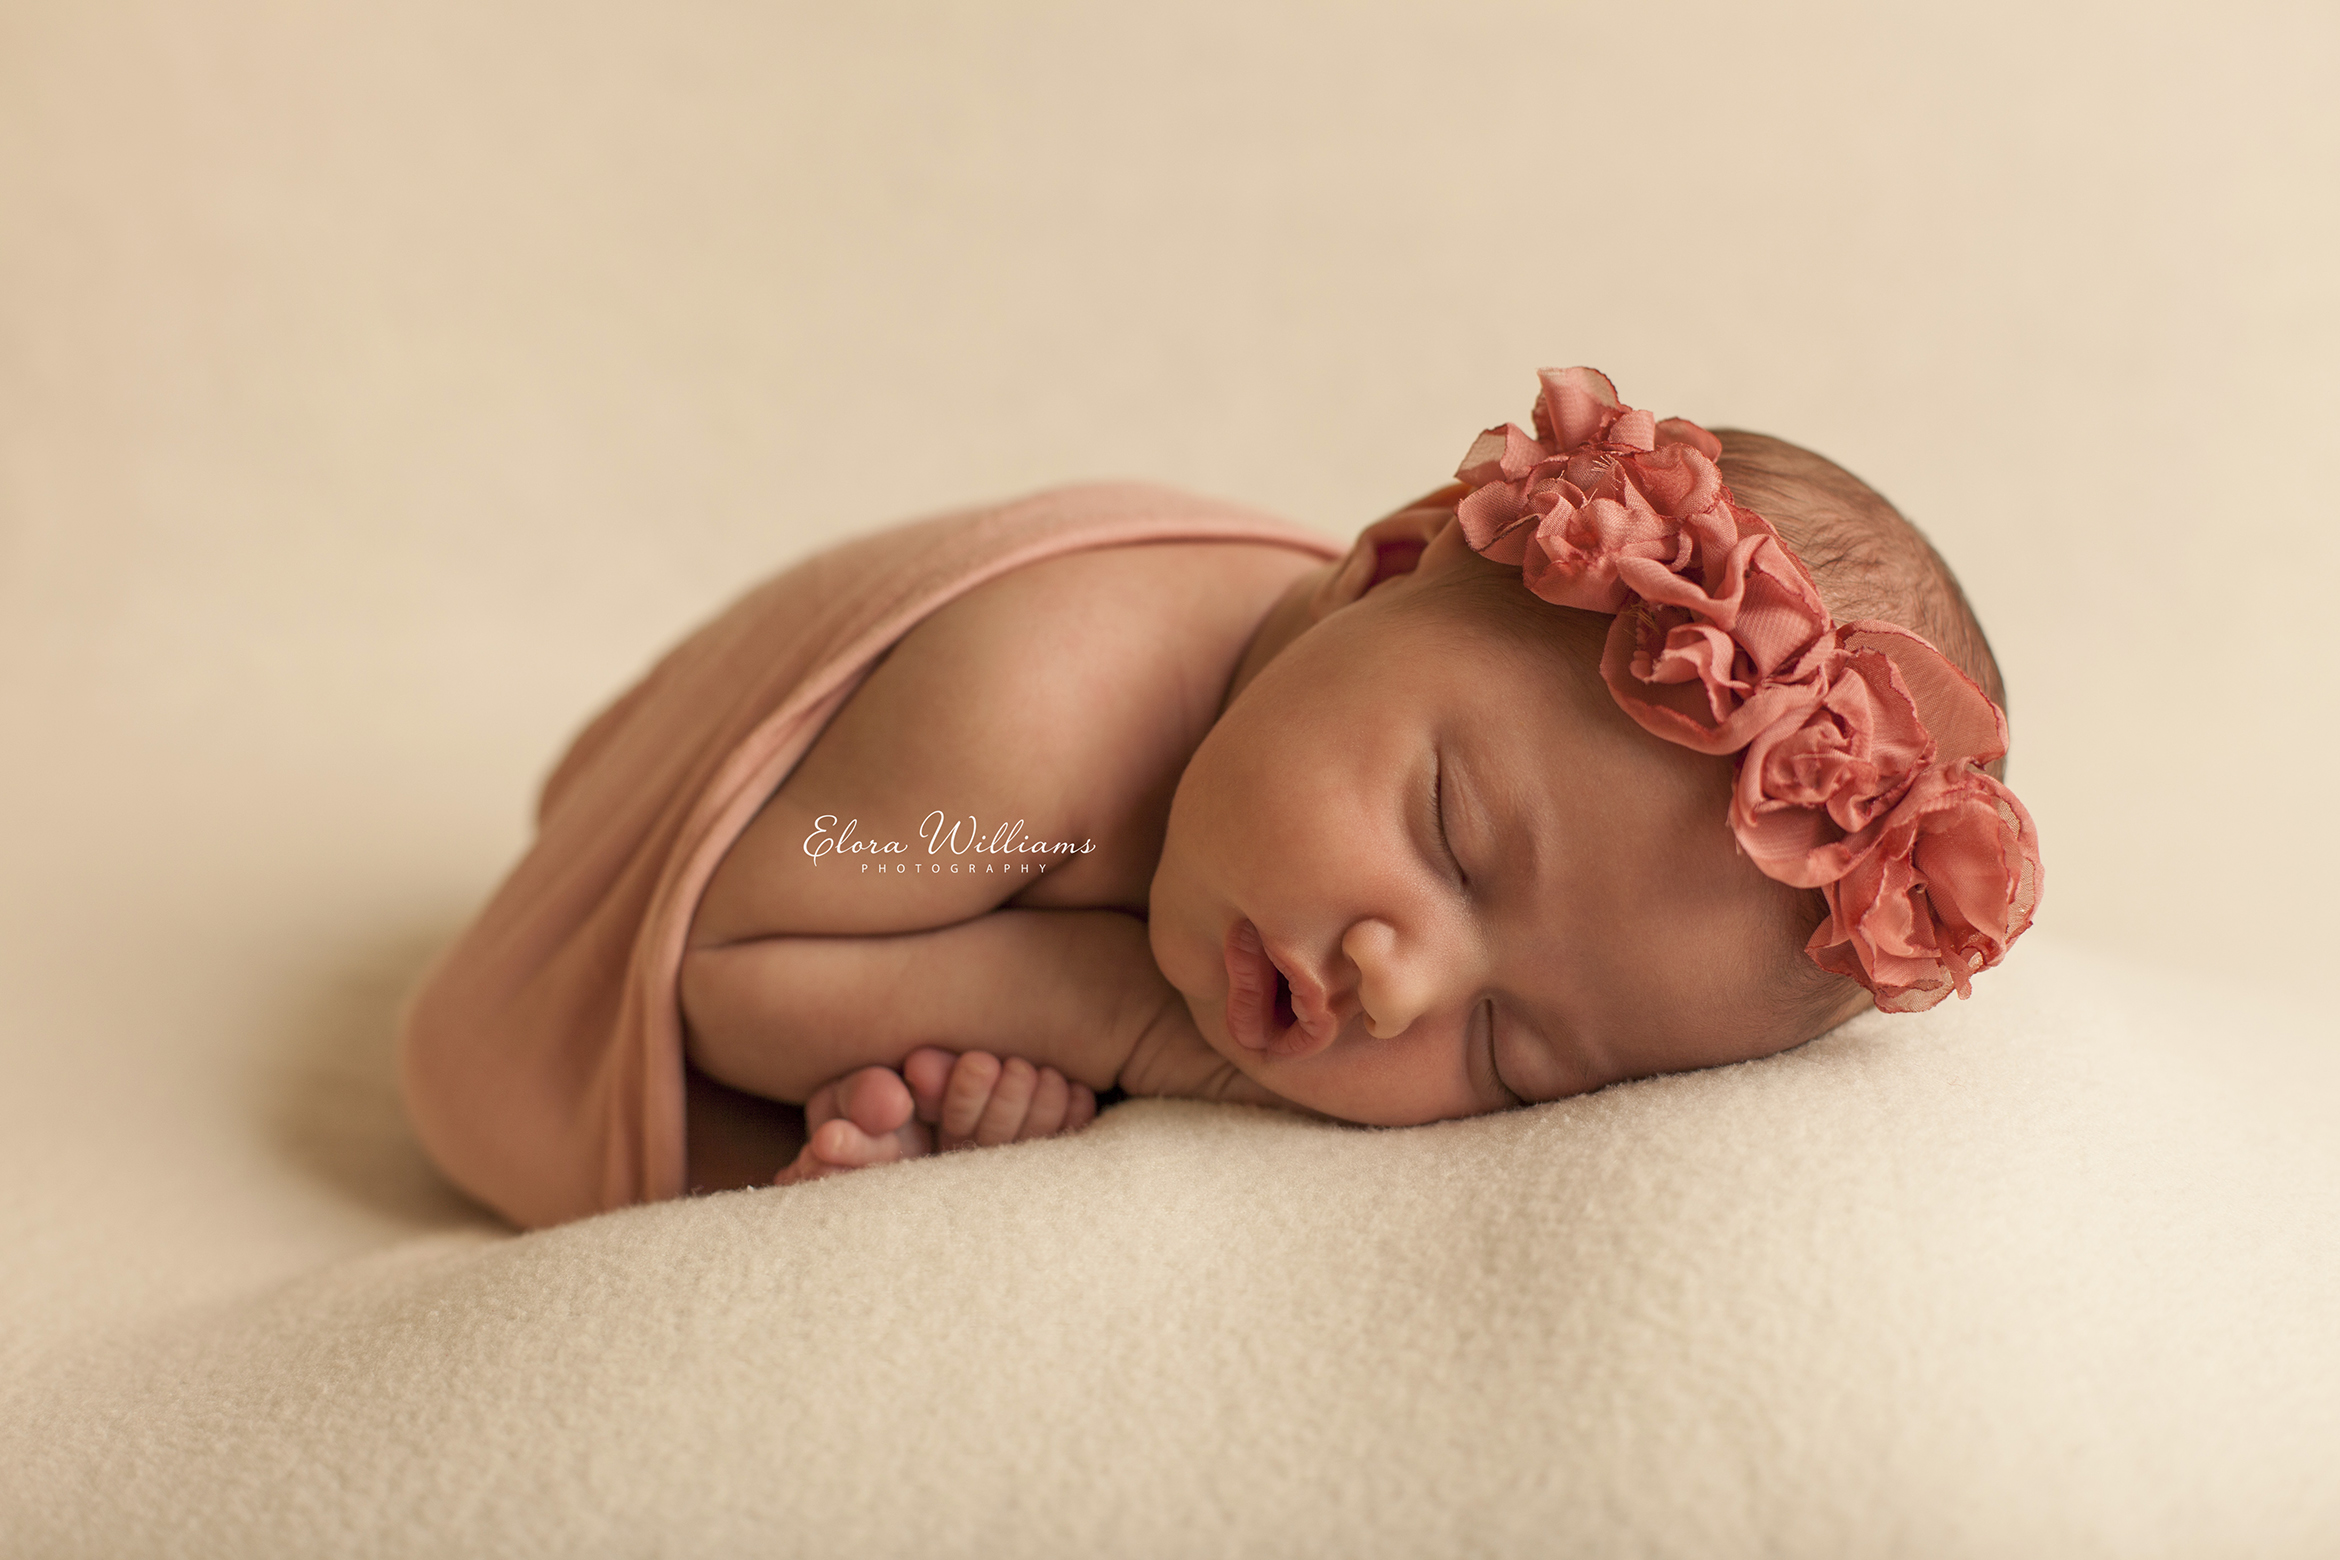 Newborn Photographer  |  Elora Williams Photography